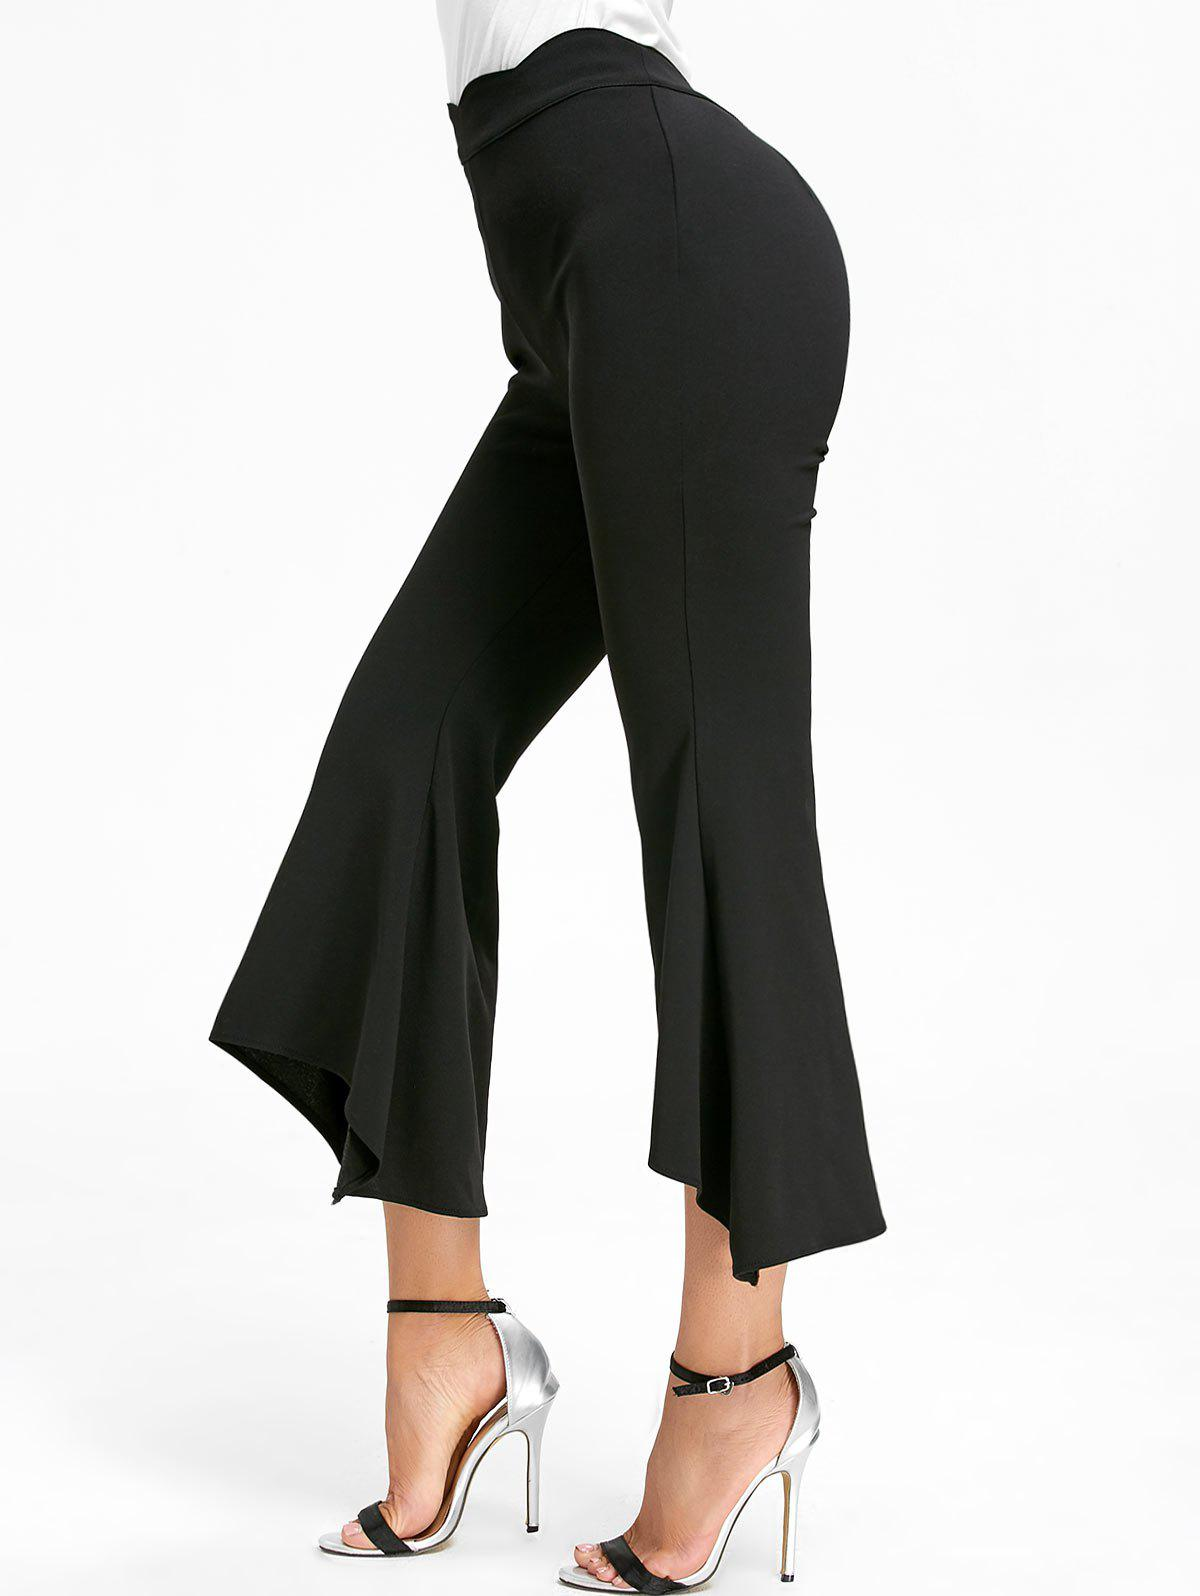 Affordable Ninth High Waisted Bell Bottom Pants